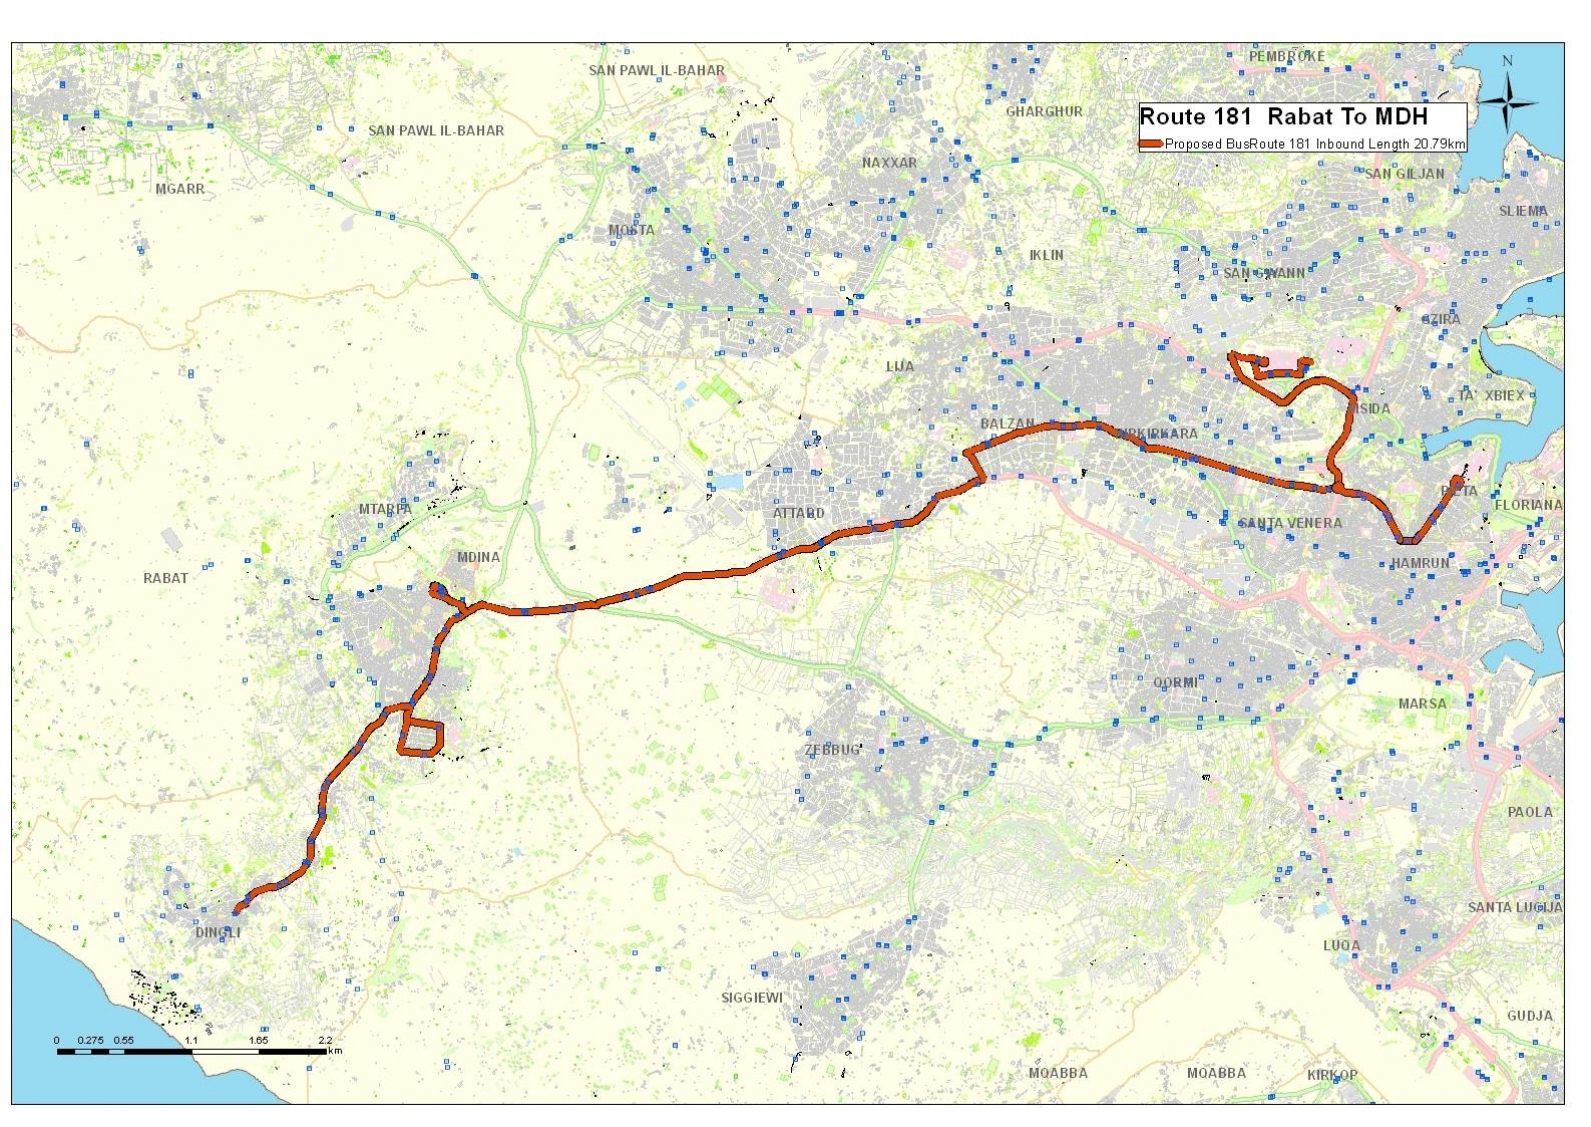 Land-current-network-routes-and-schedules-Dingli-Mtarfa-Rabat-14